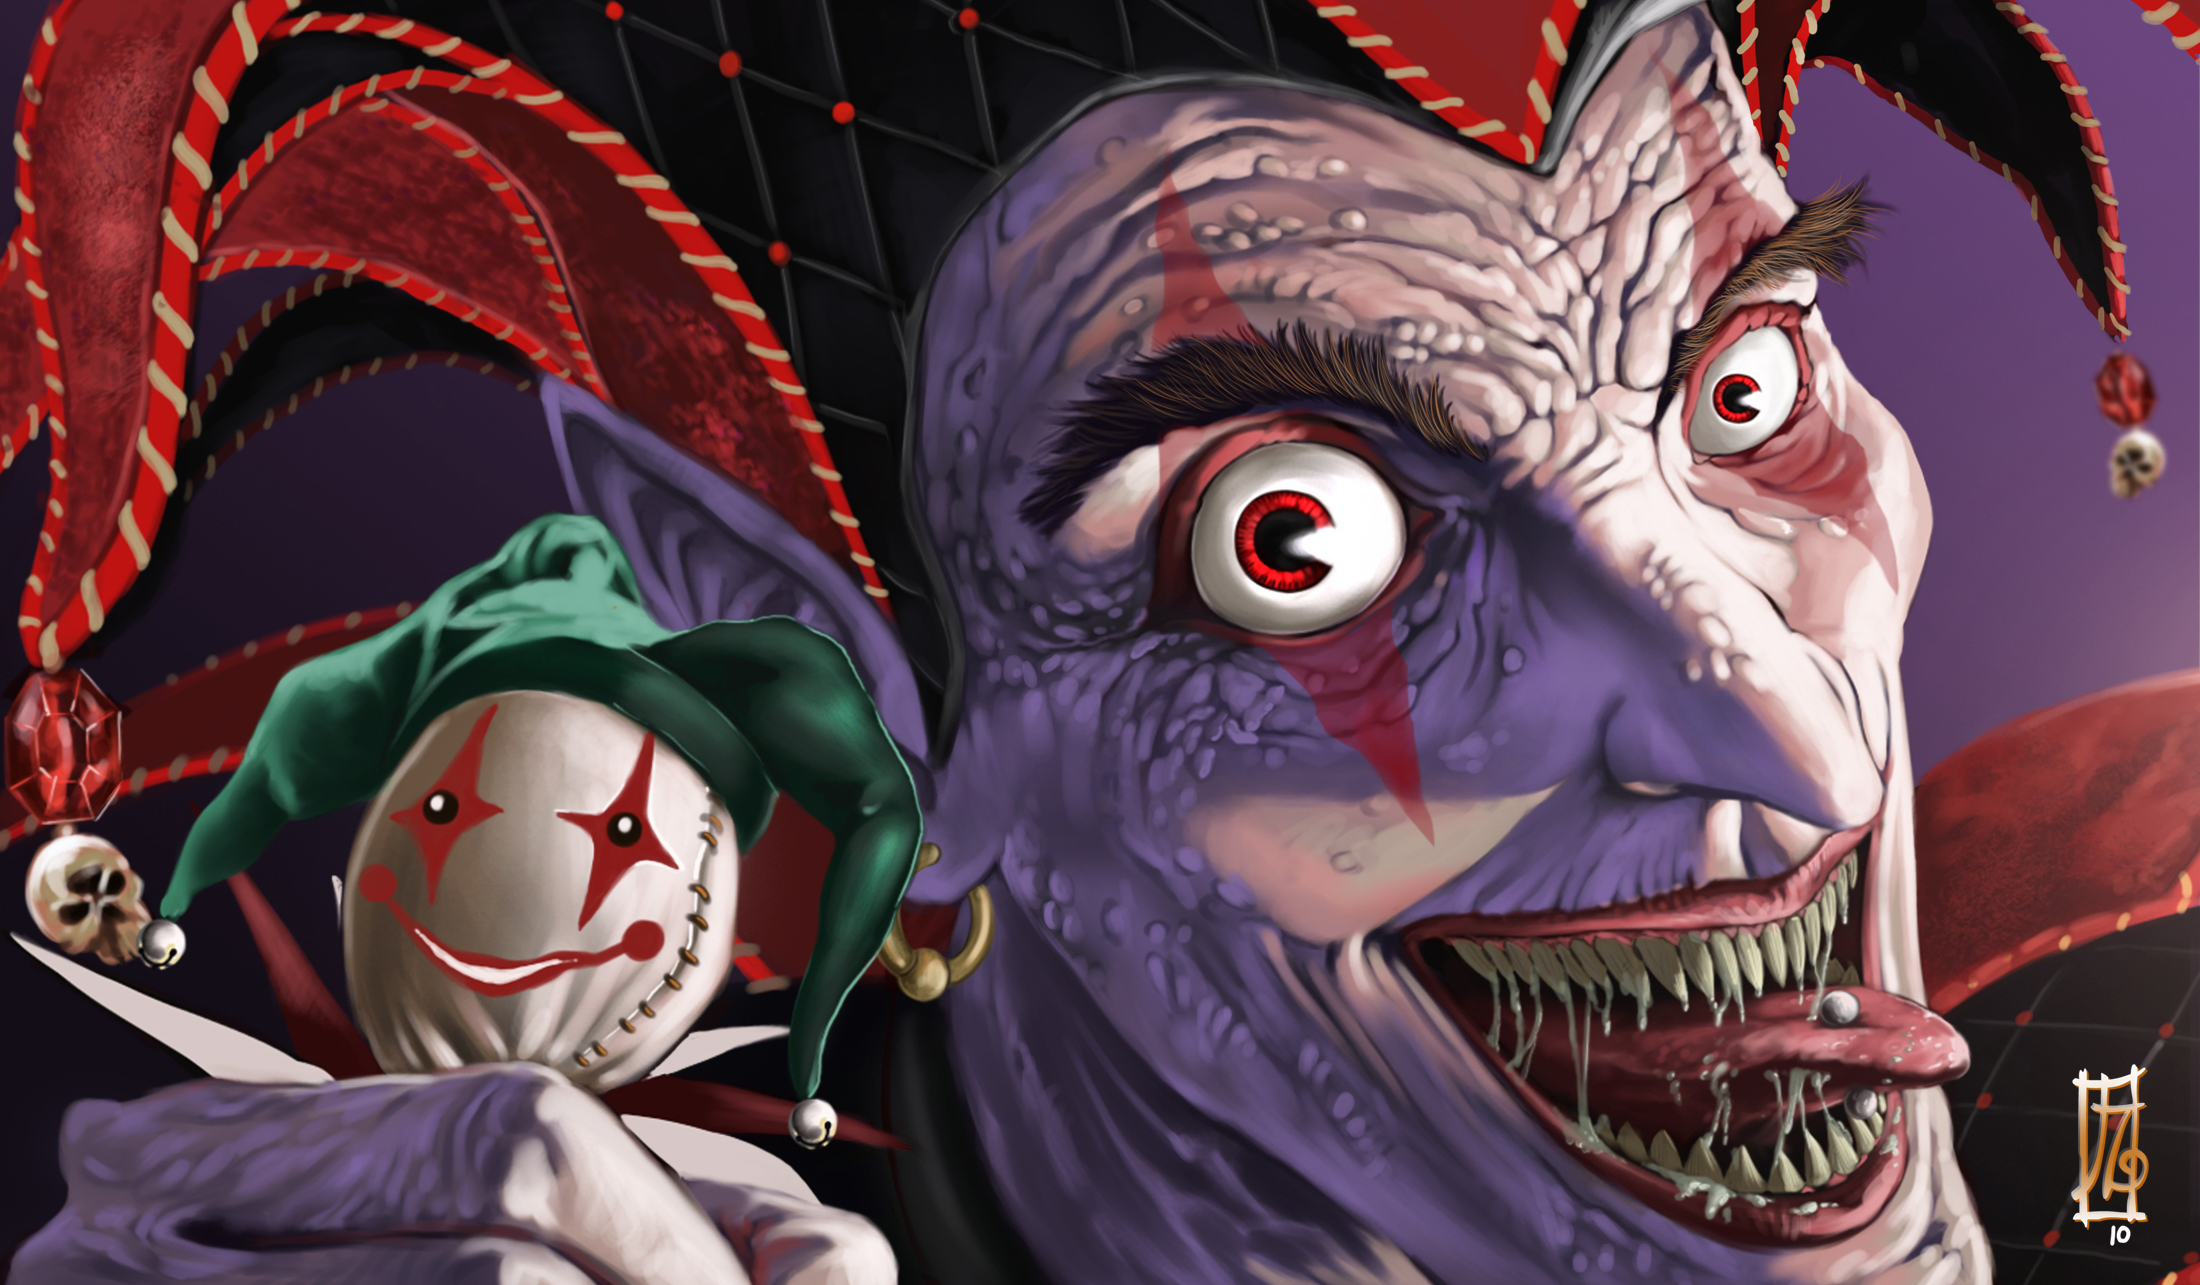 2200x1285 Jester Evil Joker Drawings Free Download Jester Background